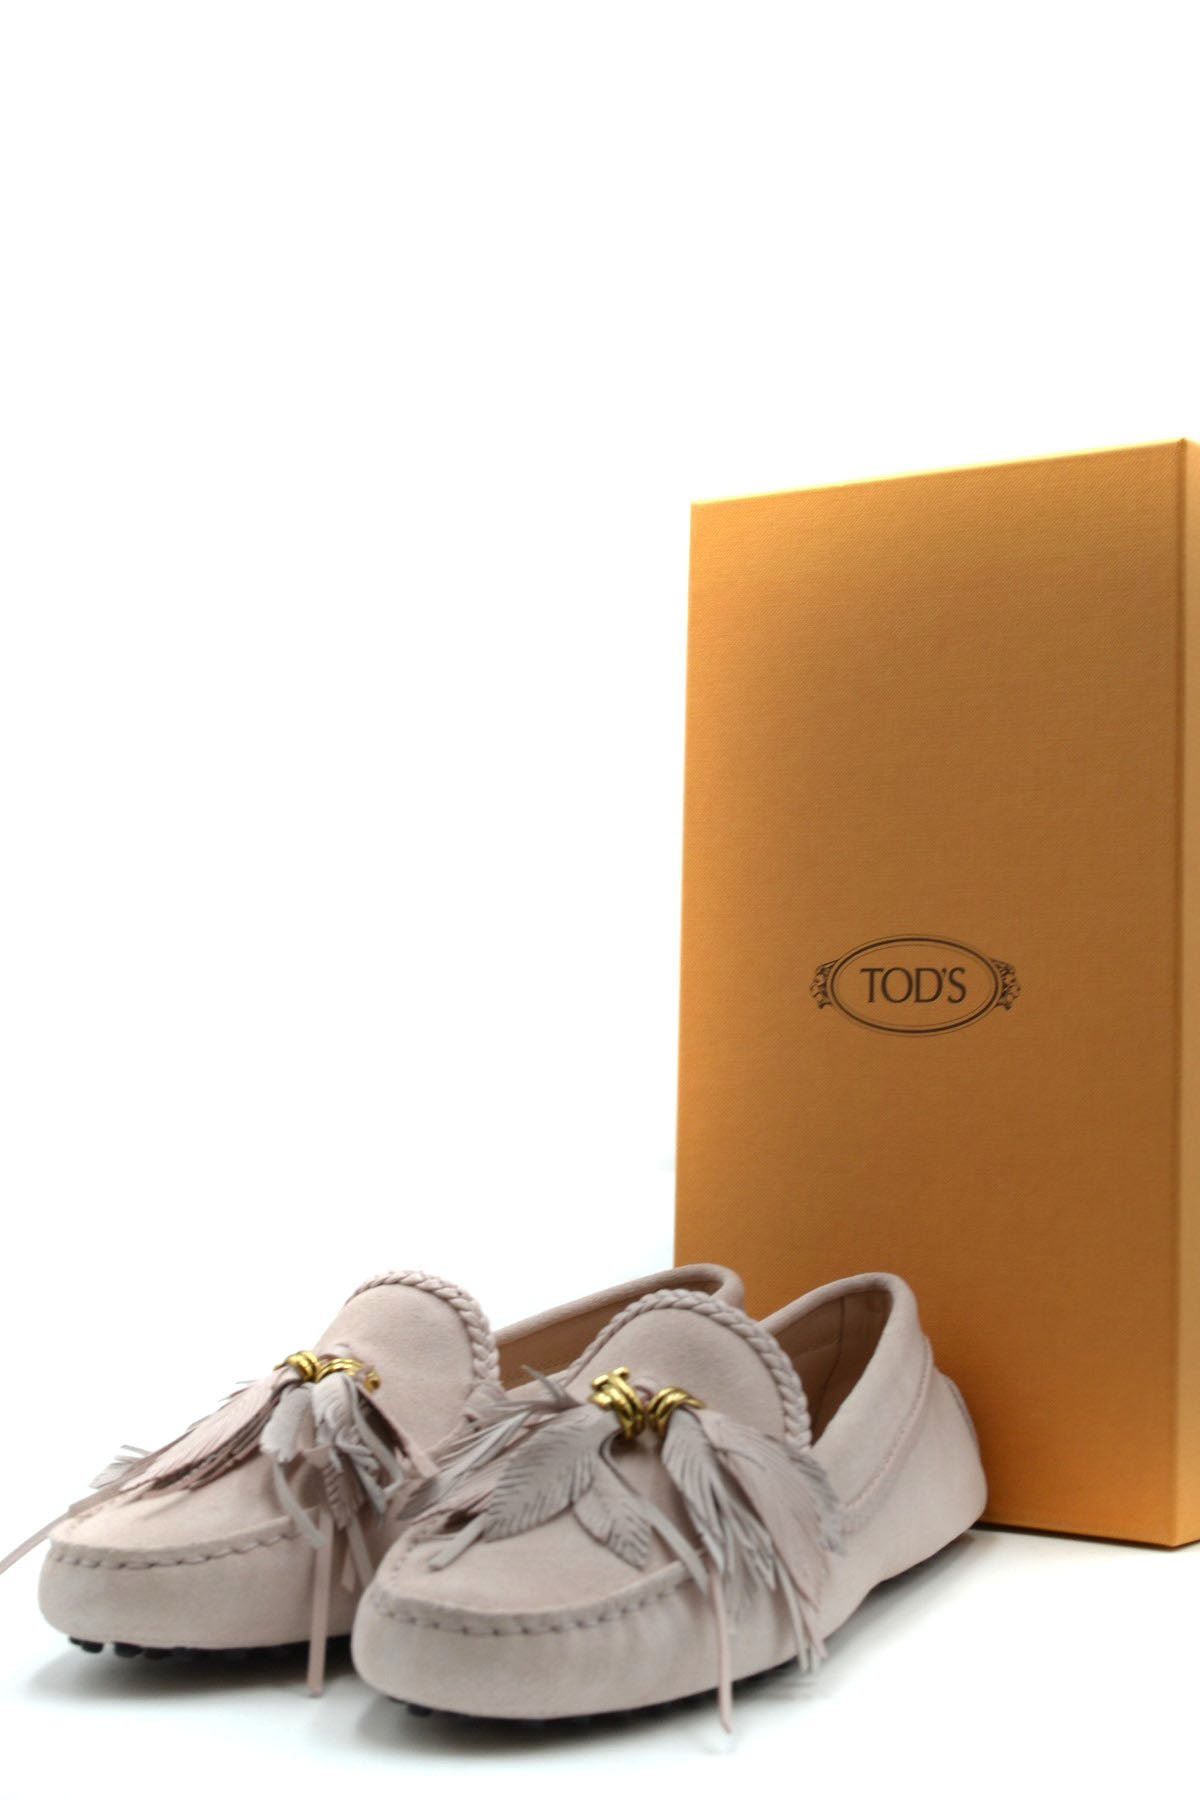 Shoes Tod'S--Product Details Type Of Accessory: ShoesTerms: New With LabelYear: 2019Main Color: Antique PinkGender: WomanMade In: ItalyManufacturer Part Number: Xxw00G0Ar80Ckom025Size: EuSeason: Spring / SummerComposition: Chamois 100%-Keyomi-Sook